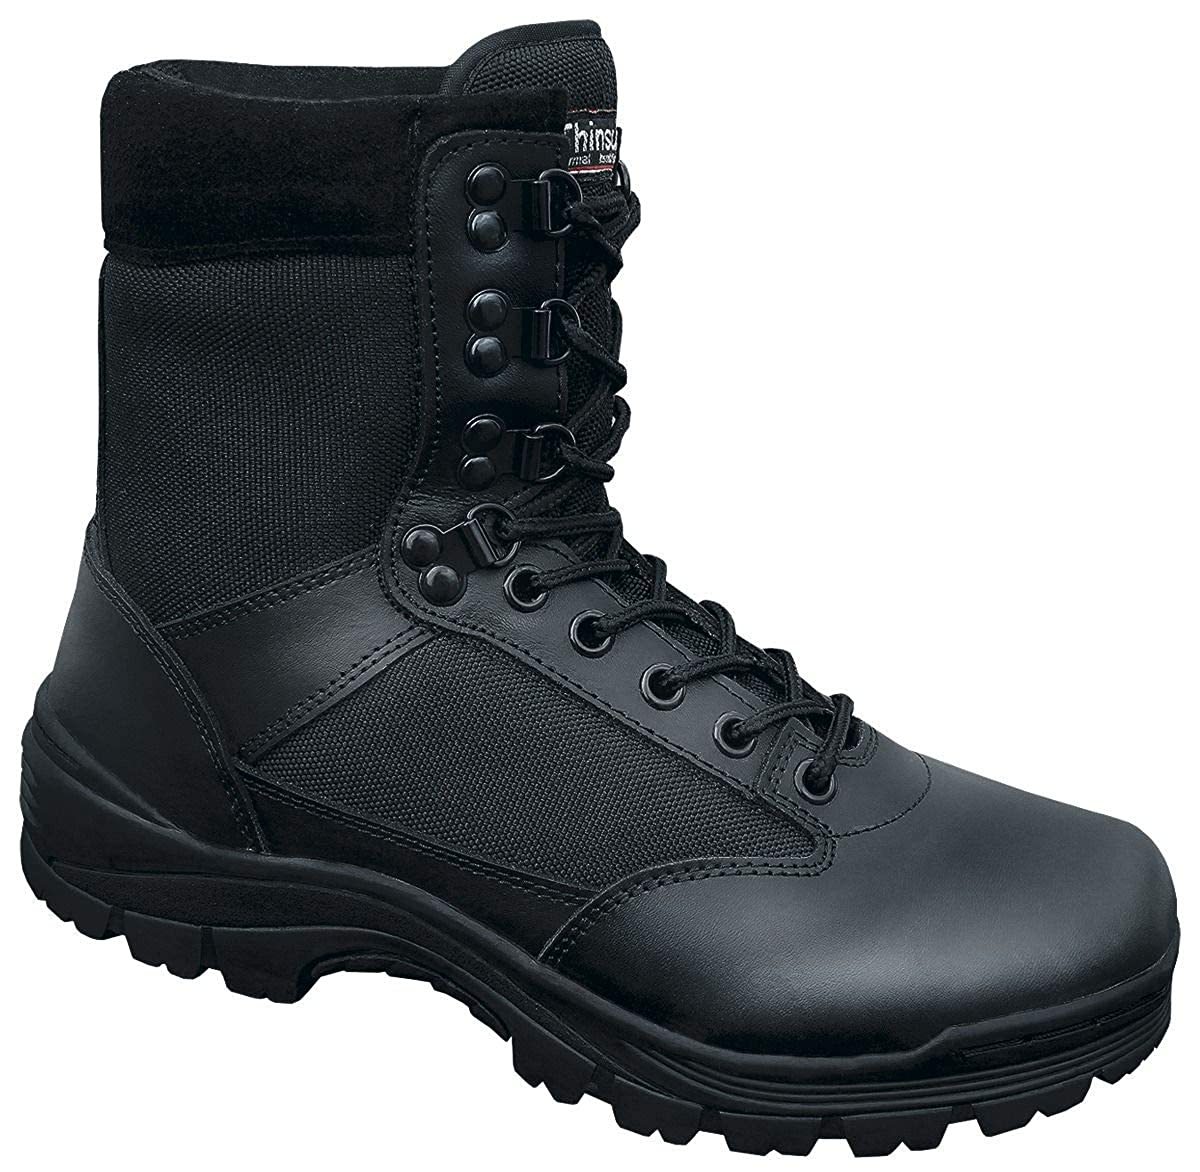 Brandit Phantom Tactical Stiefel schwarz